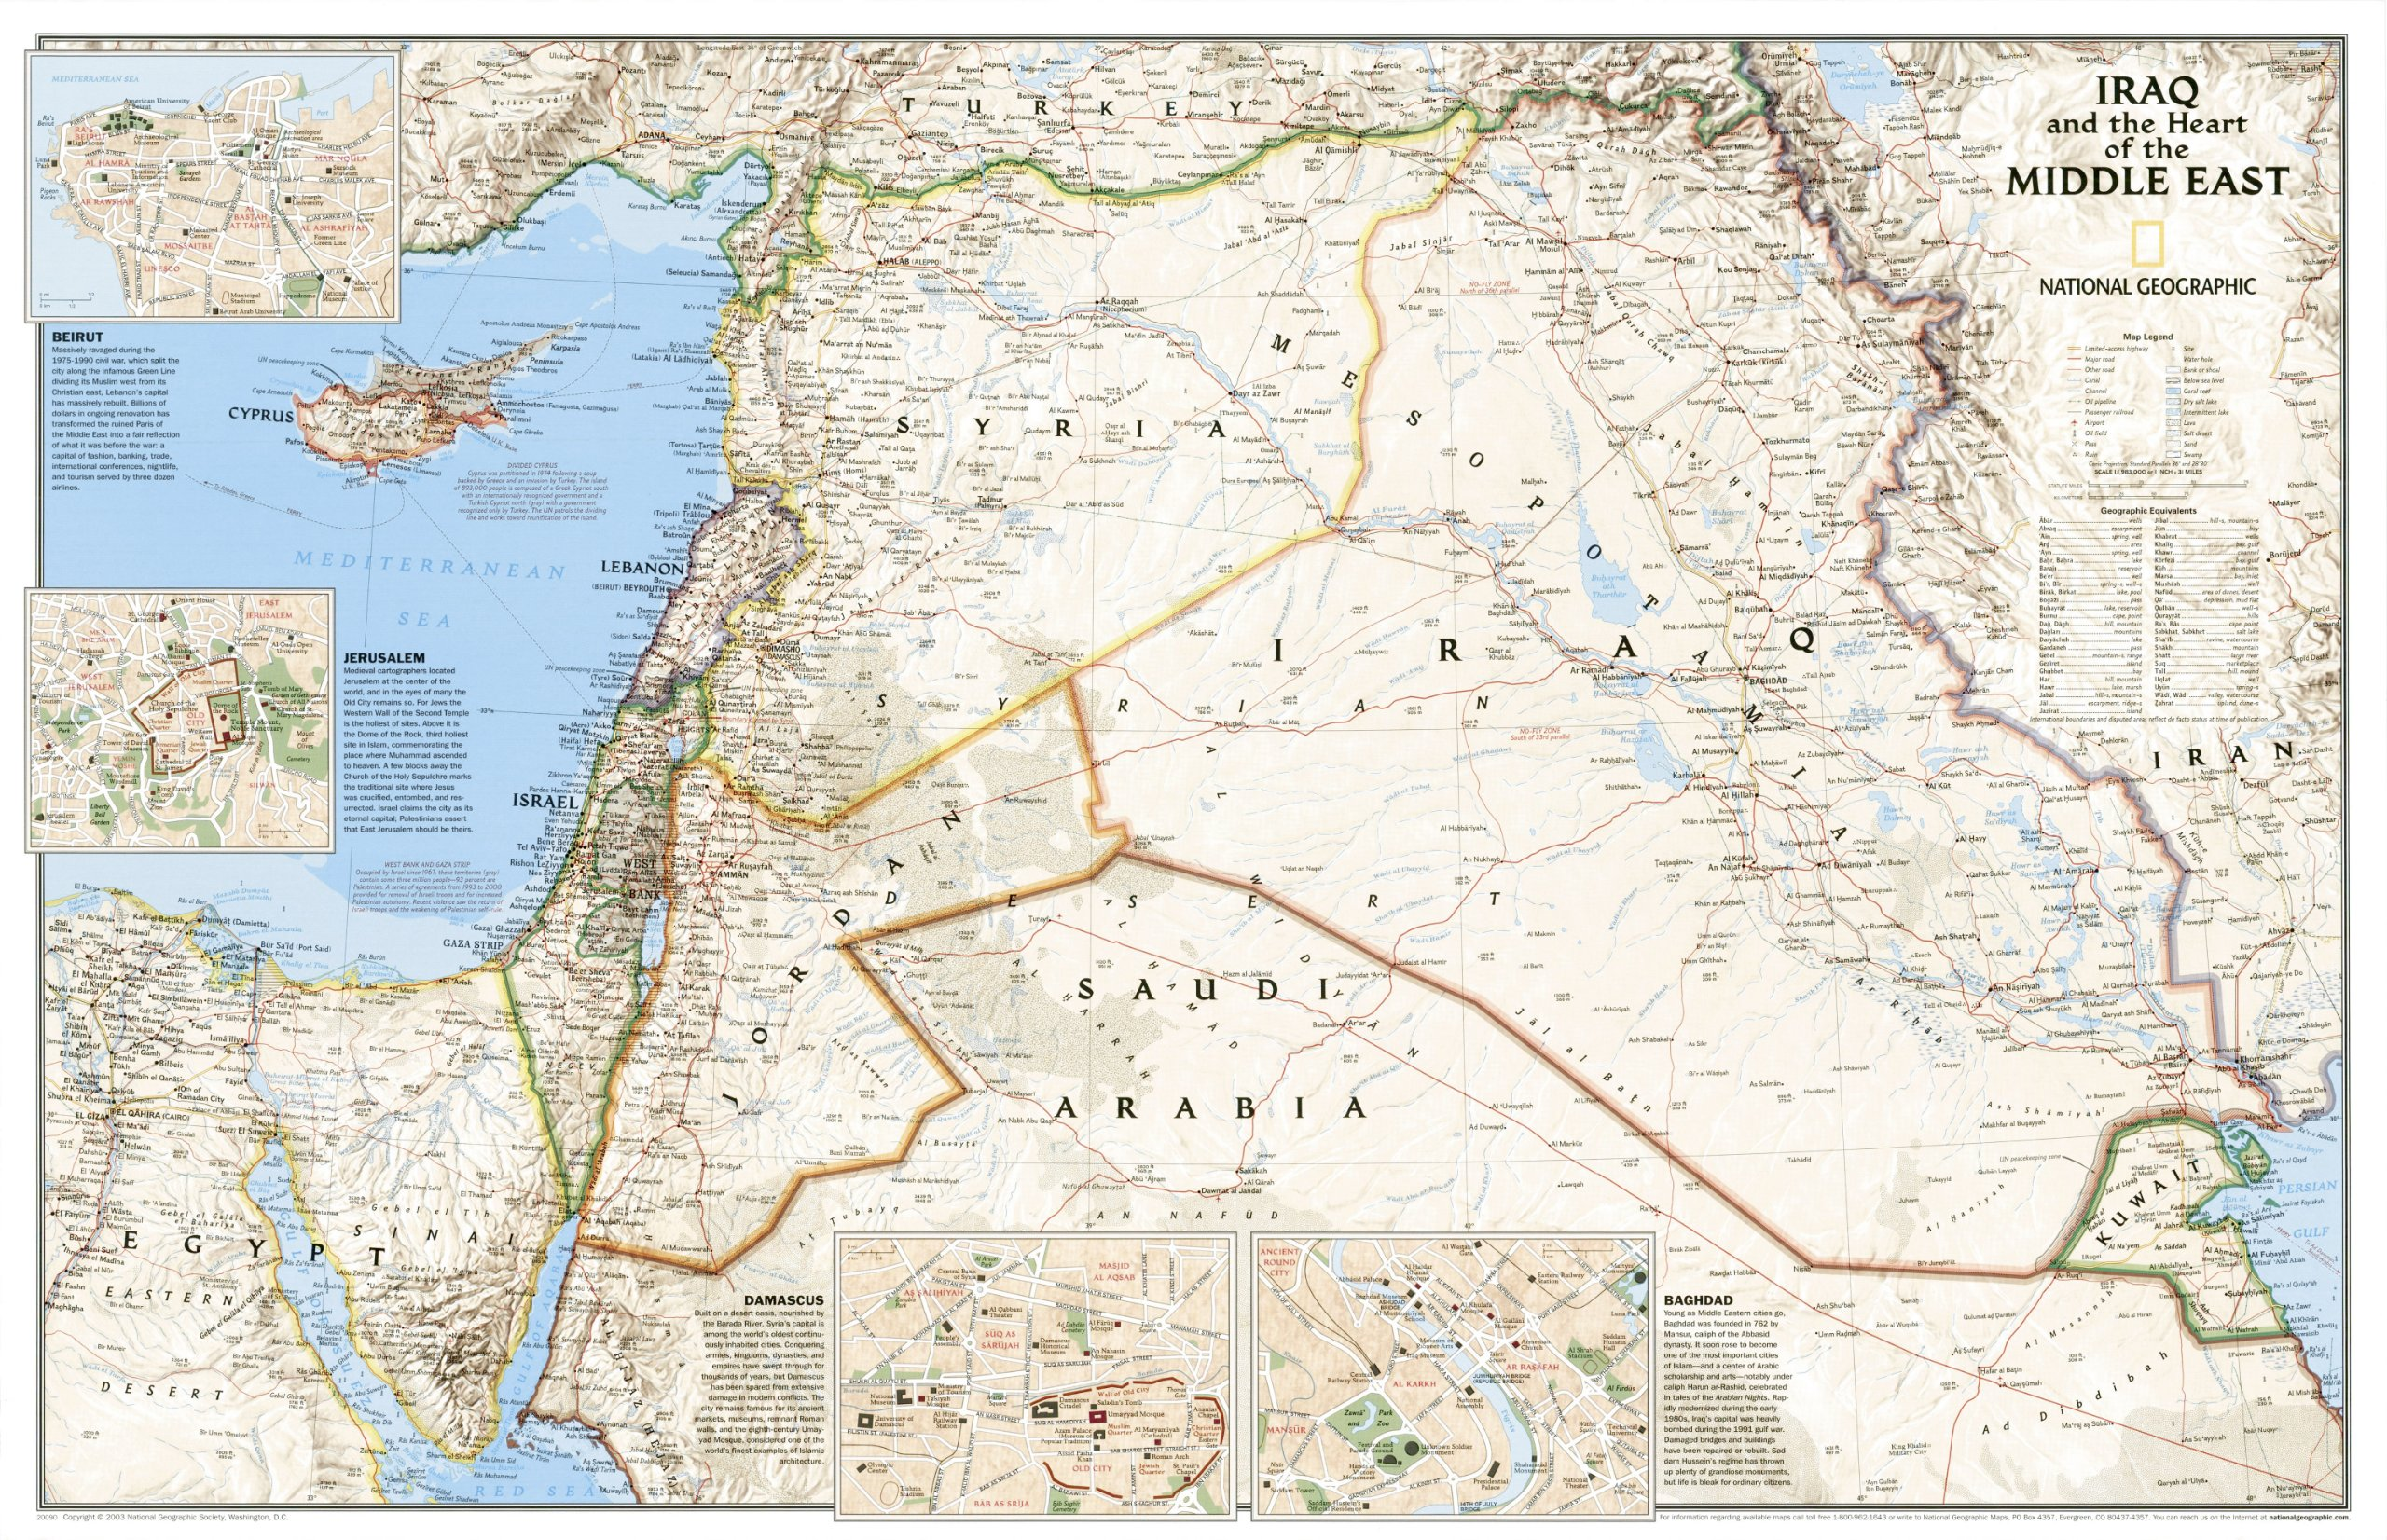 Middle East wIraq 2sided National Geographic Maps